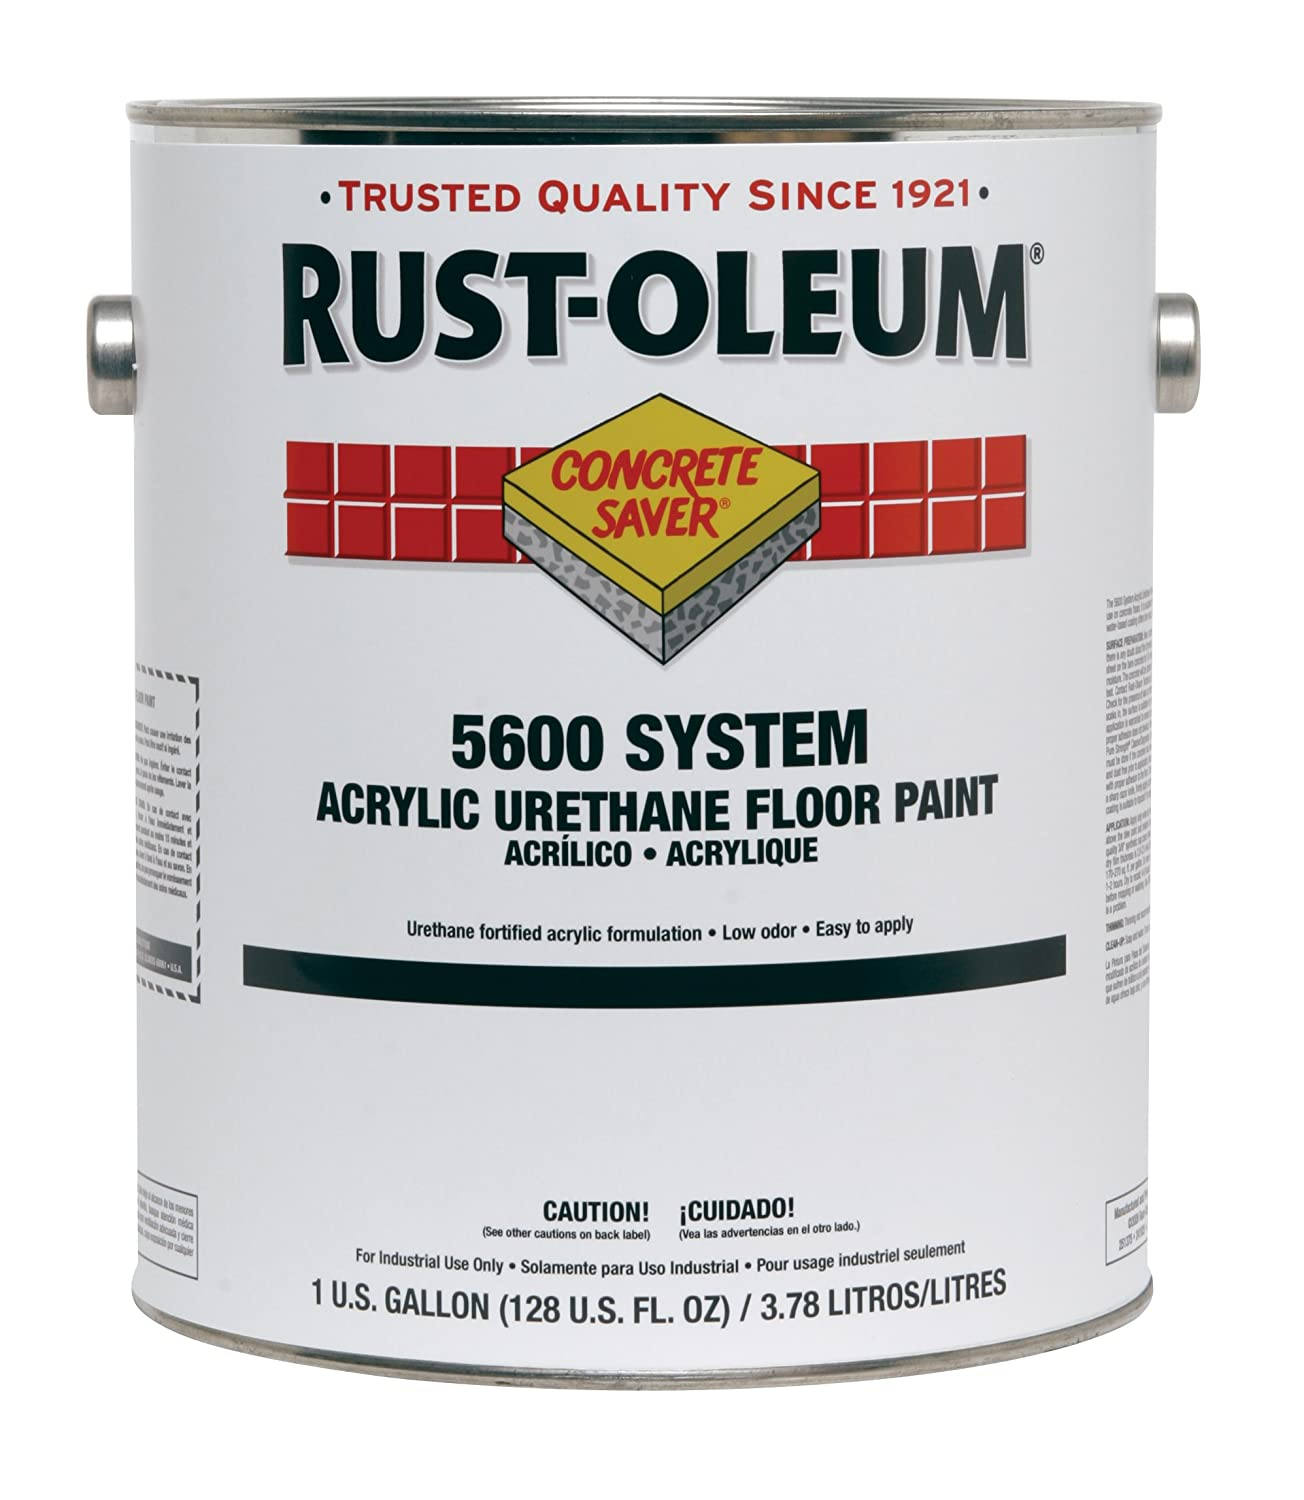 Rust-Oleum 261177 Concrete Saver AS5600 System Acrylic Anti-Slip Floor and Deck Coating, 1-Gallon, Gray, 2-Pack